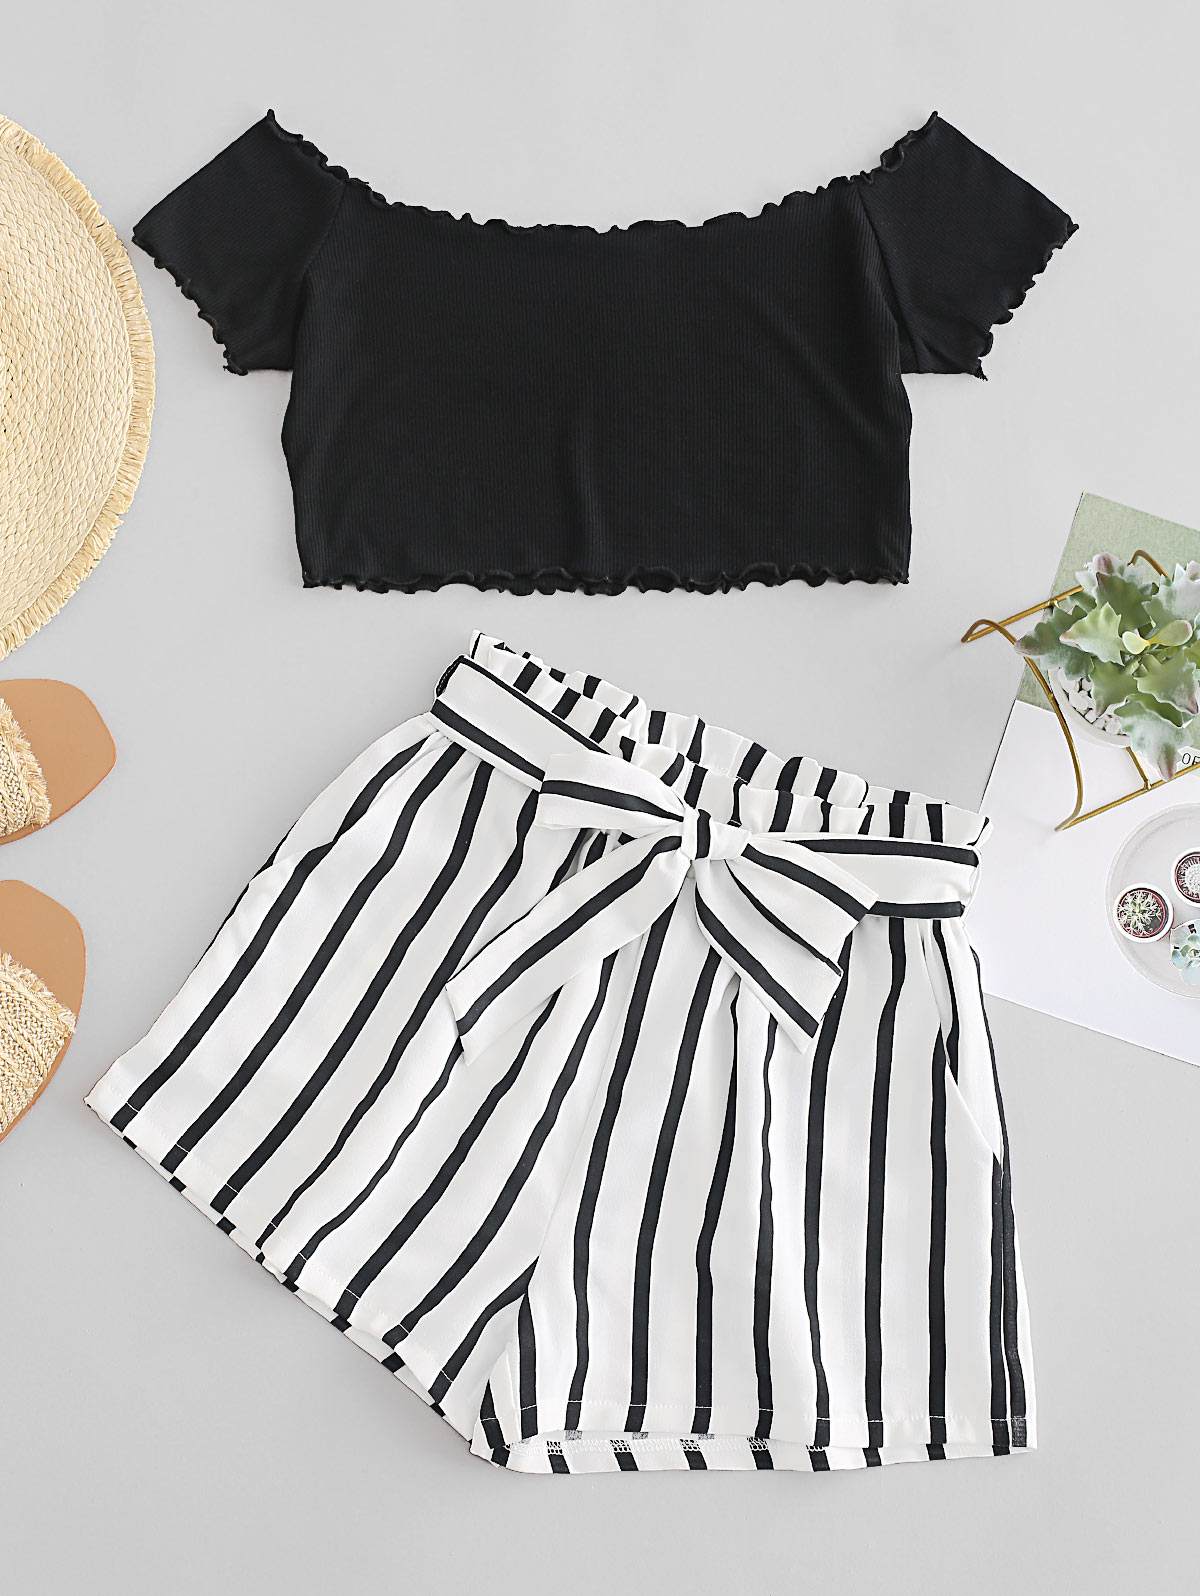 ZAFUL Womens Two Piece Outfit Off Shoulder Crop Top and Striped Shorts Set